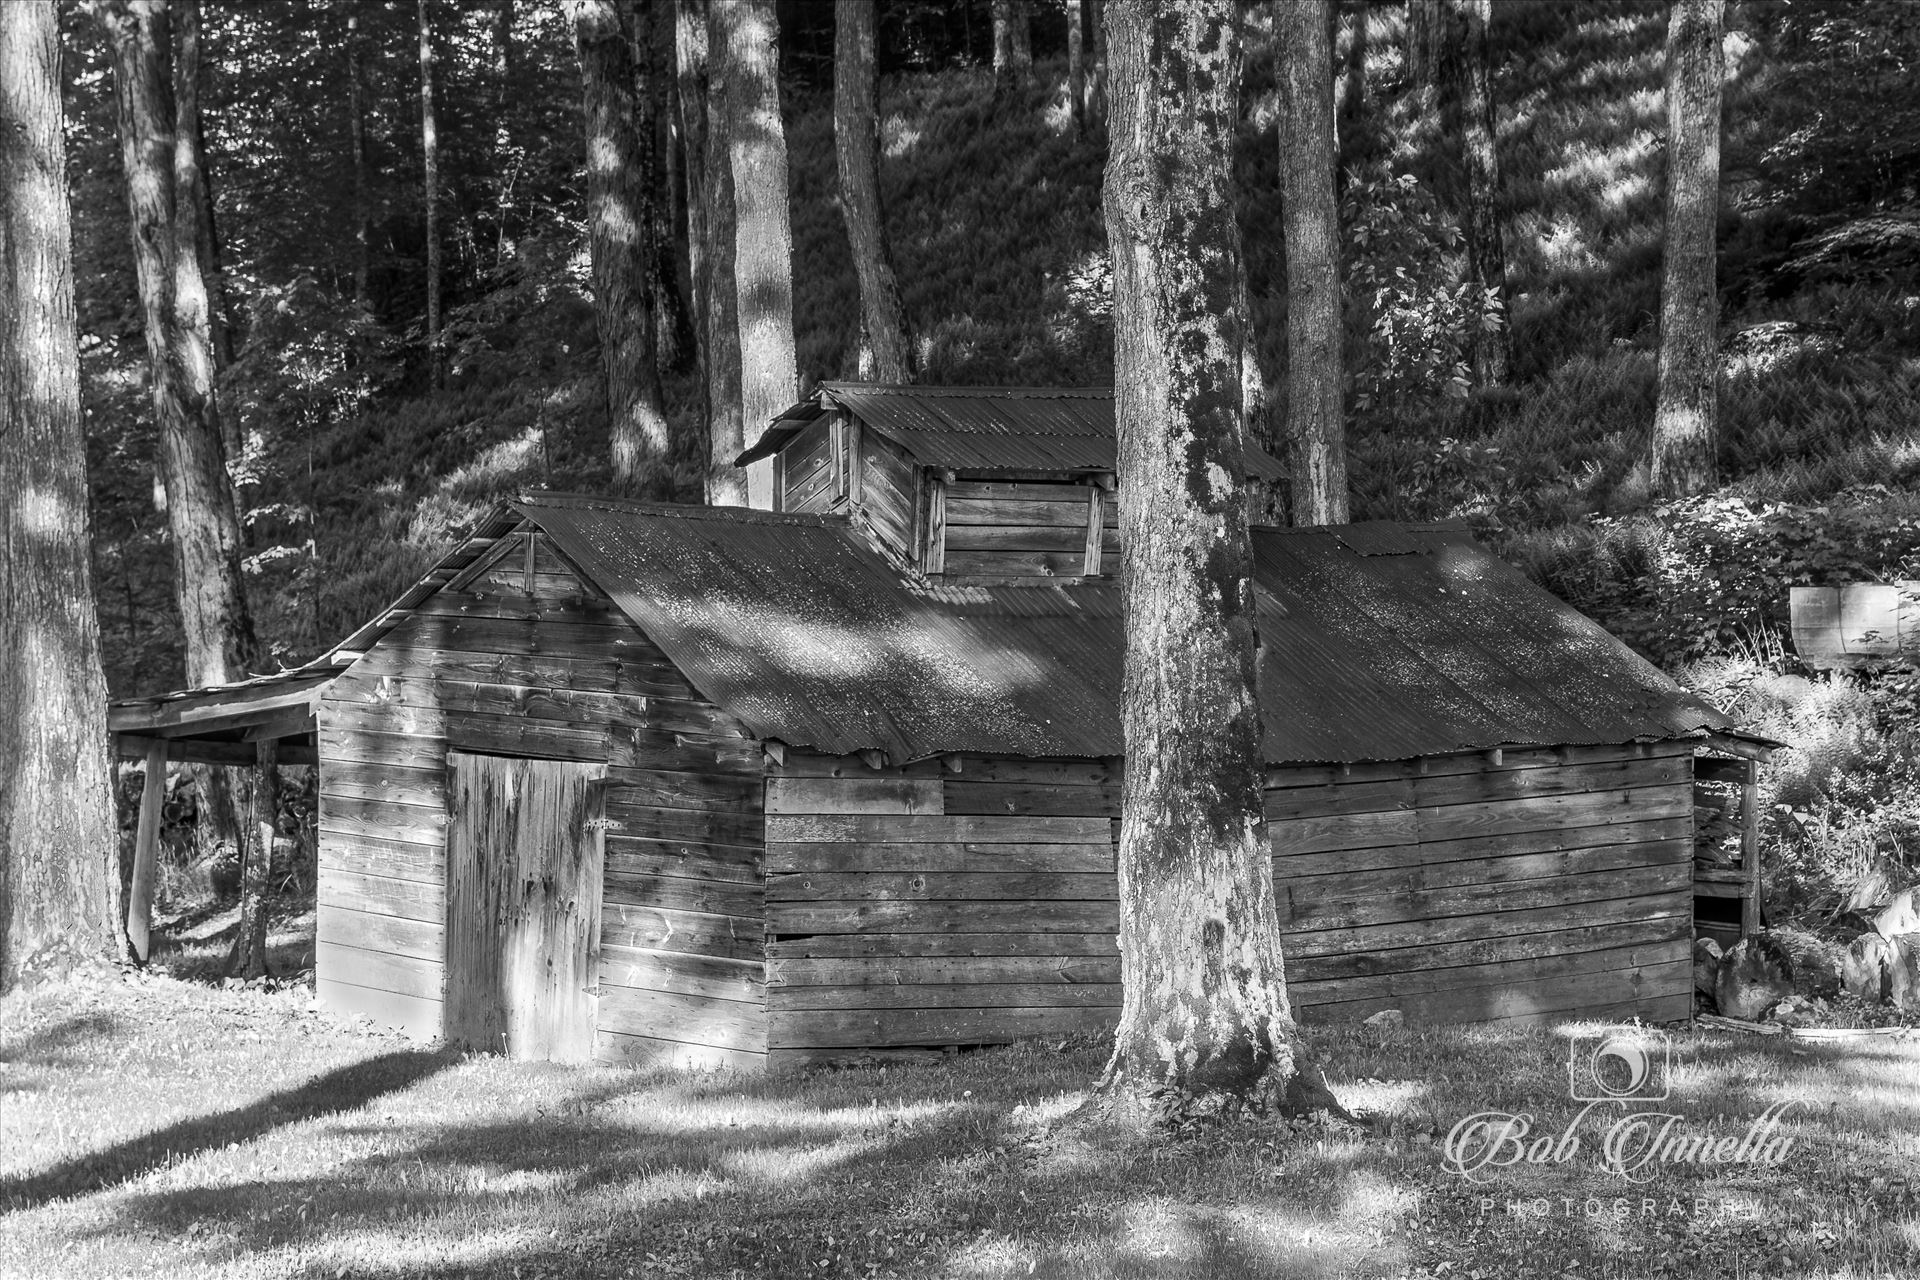 Old Vermont Sugar House in Black and White - Medon, Vermont Old Sugar House by Buckmaster